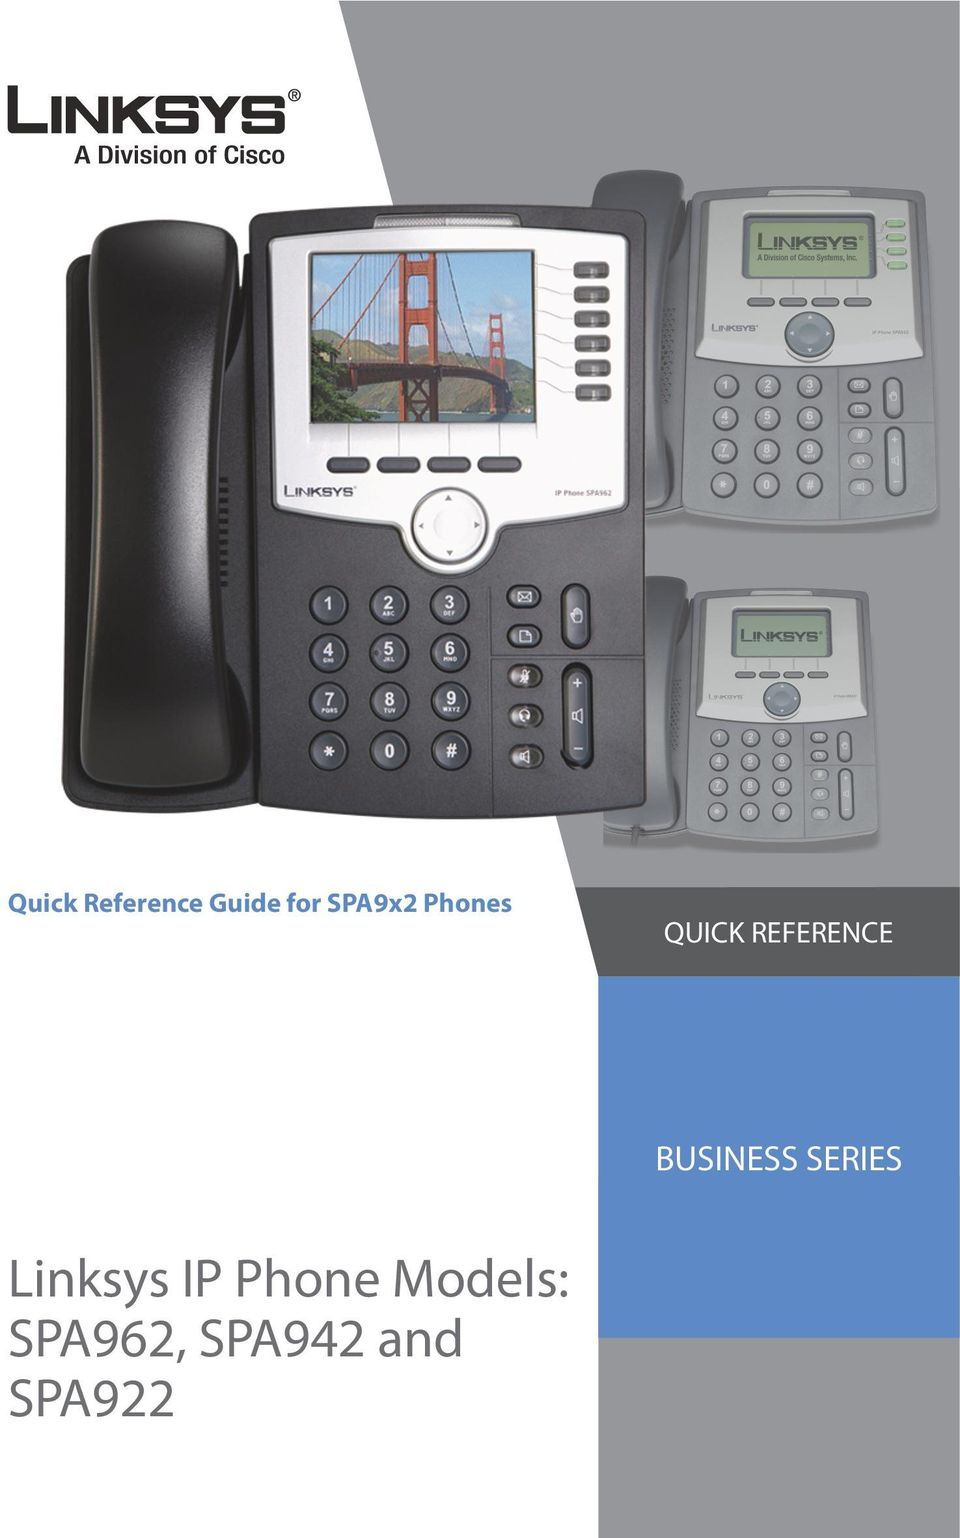 BUSINESS SERIES Linksys IP